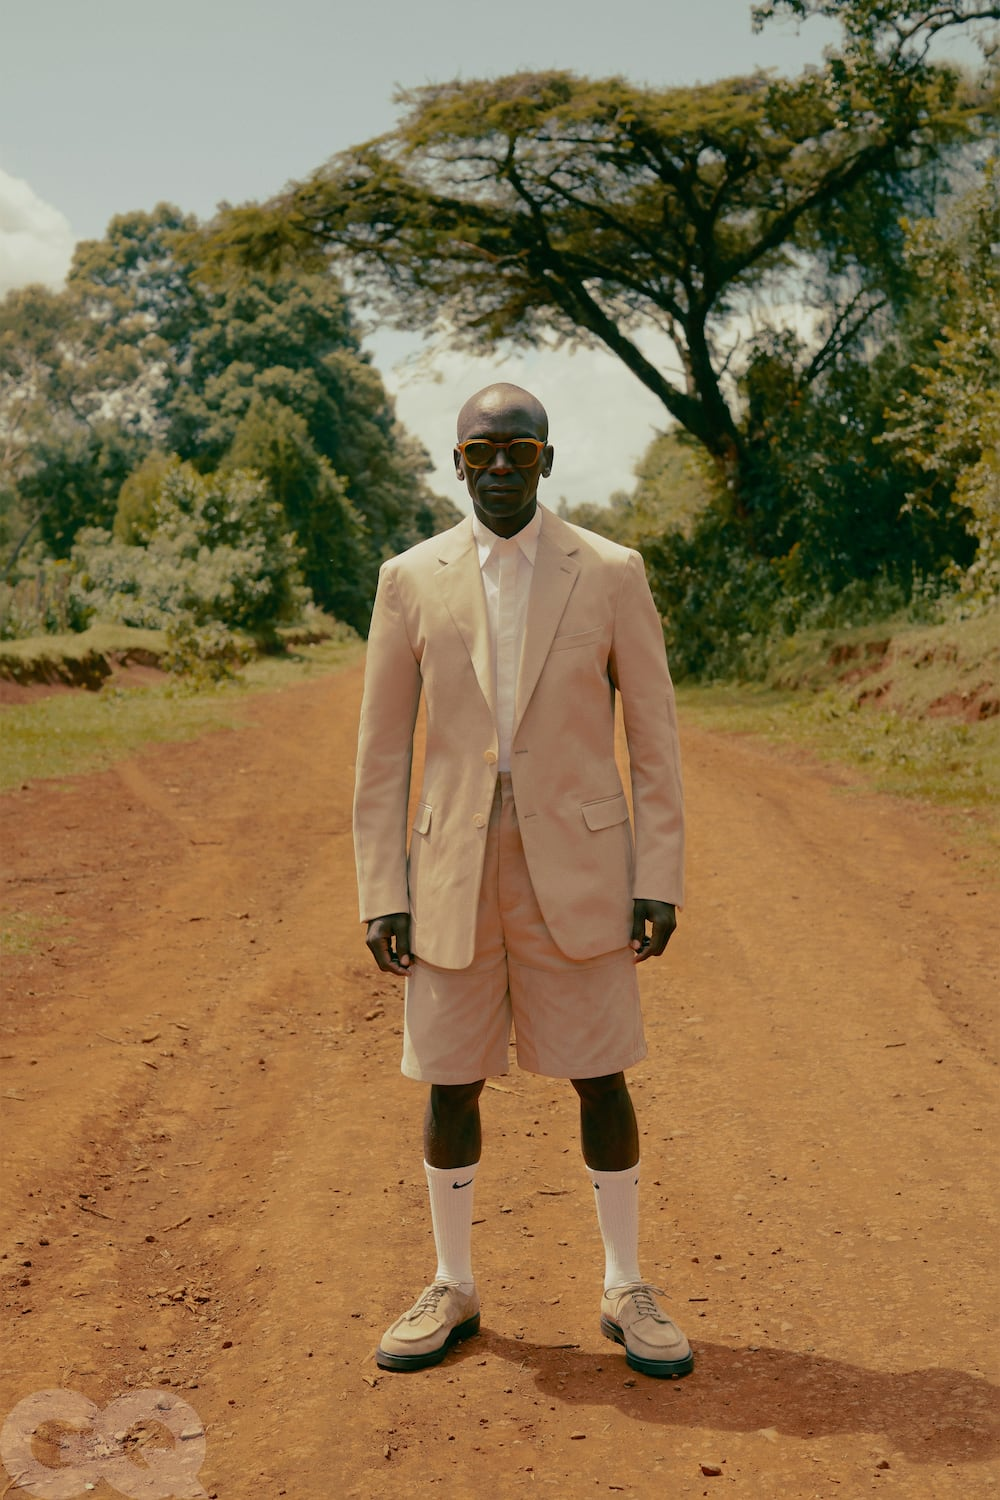 Eliud Kipchoge's bizarre yet expensive dress code thrills fans